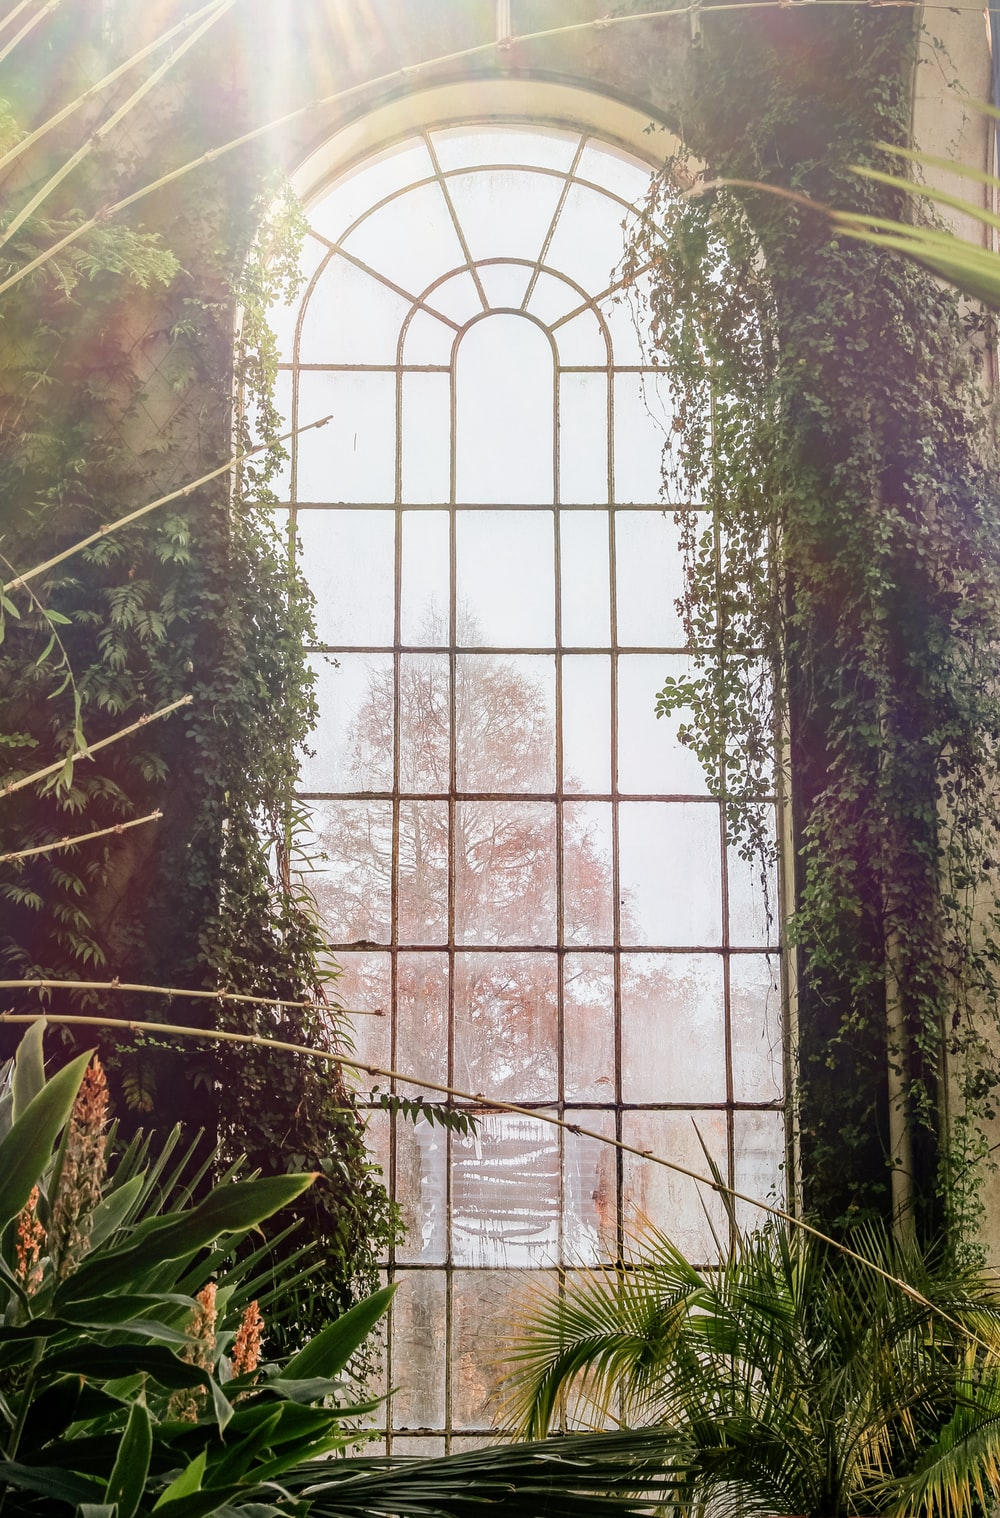 arch window surrounded with plants